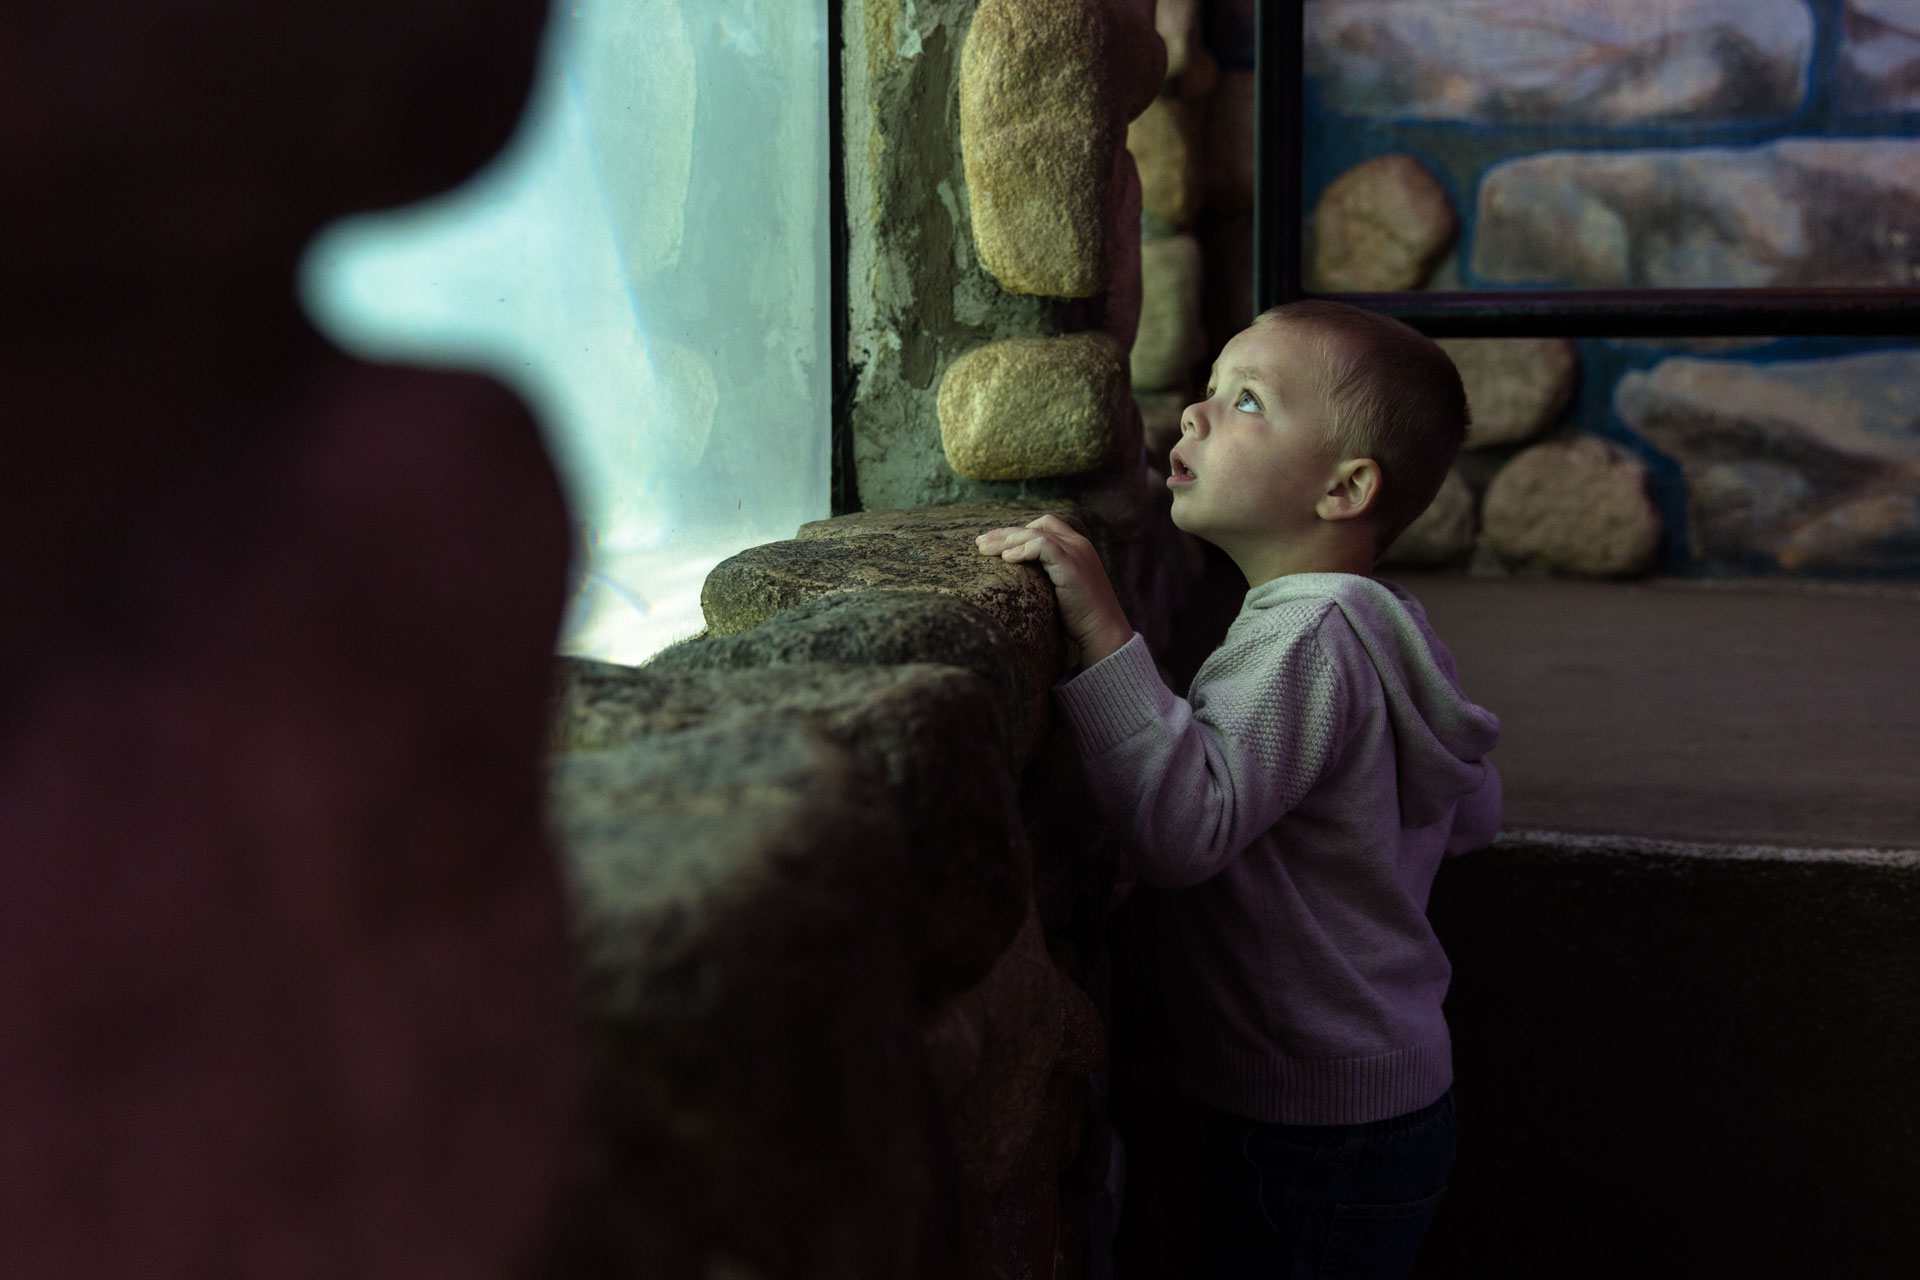 Boy looking through the glass up at the penguins at the zoo